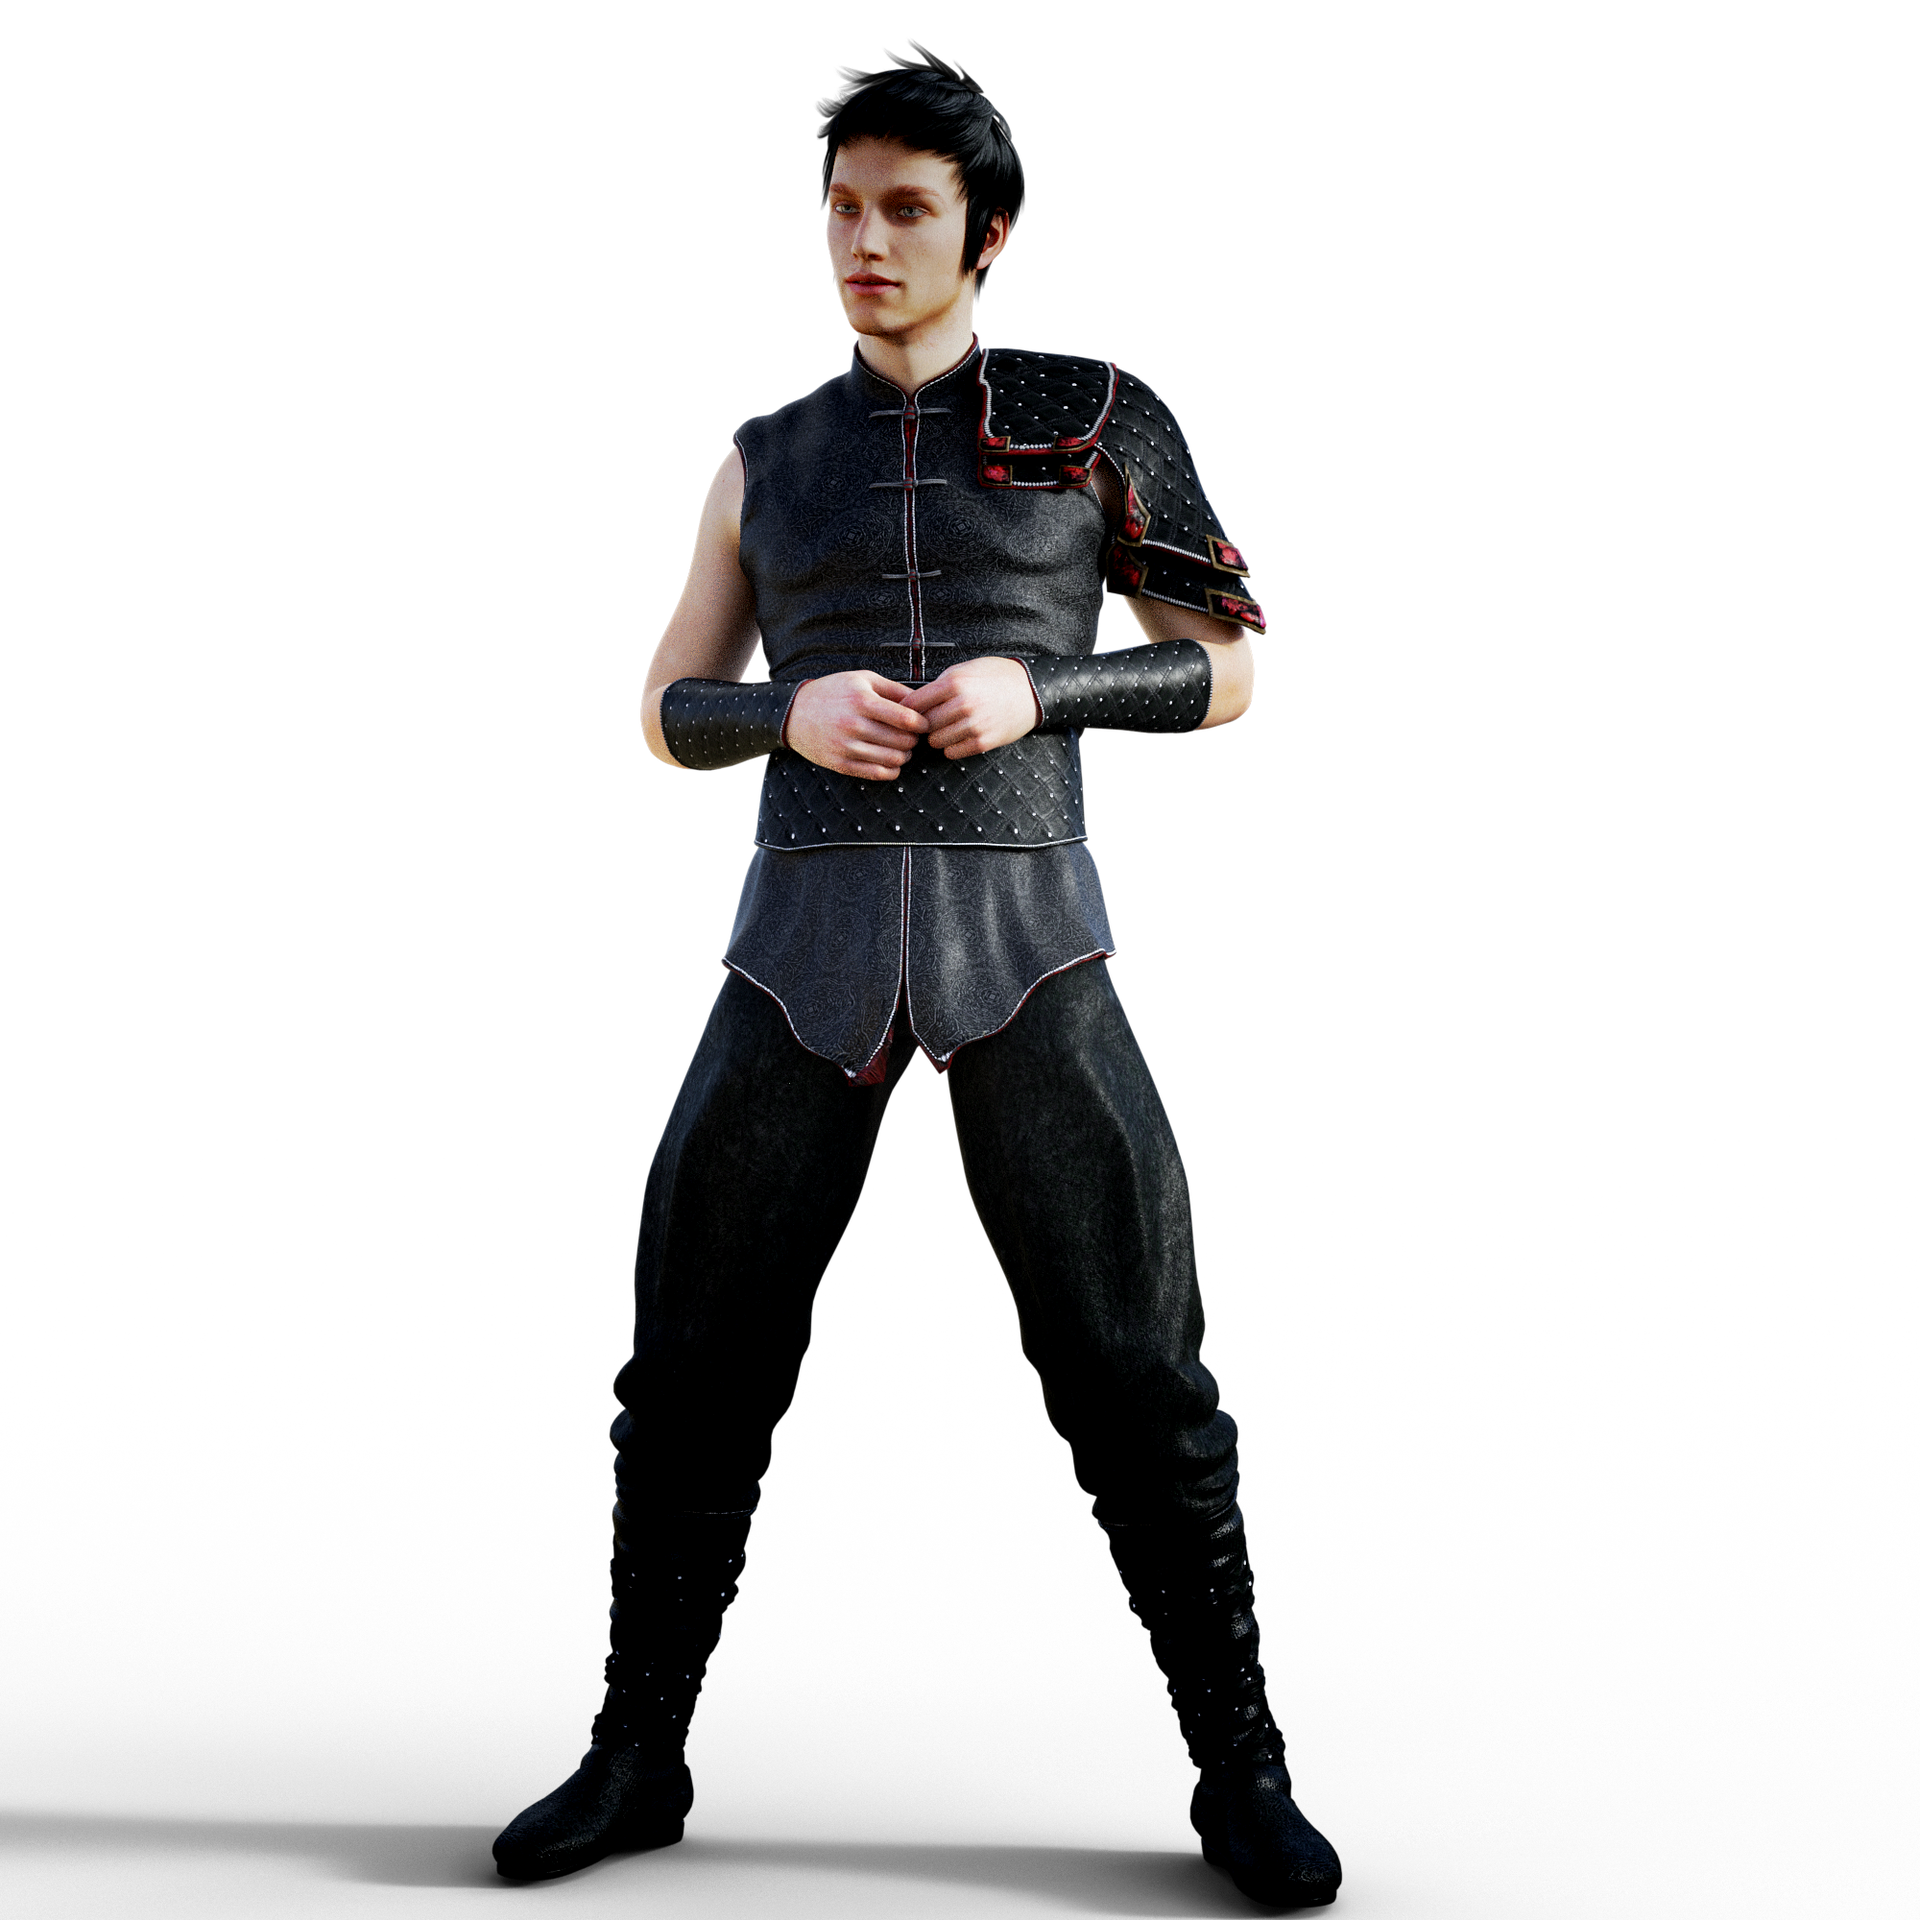 Animated fighter PNG Image